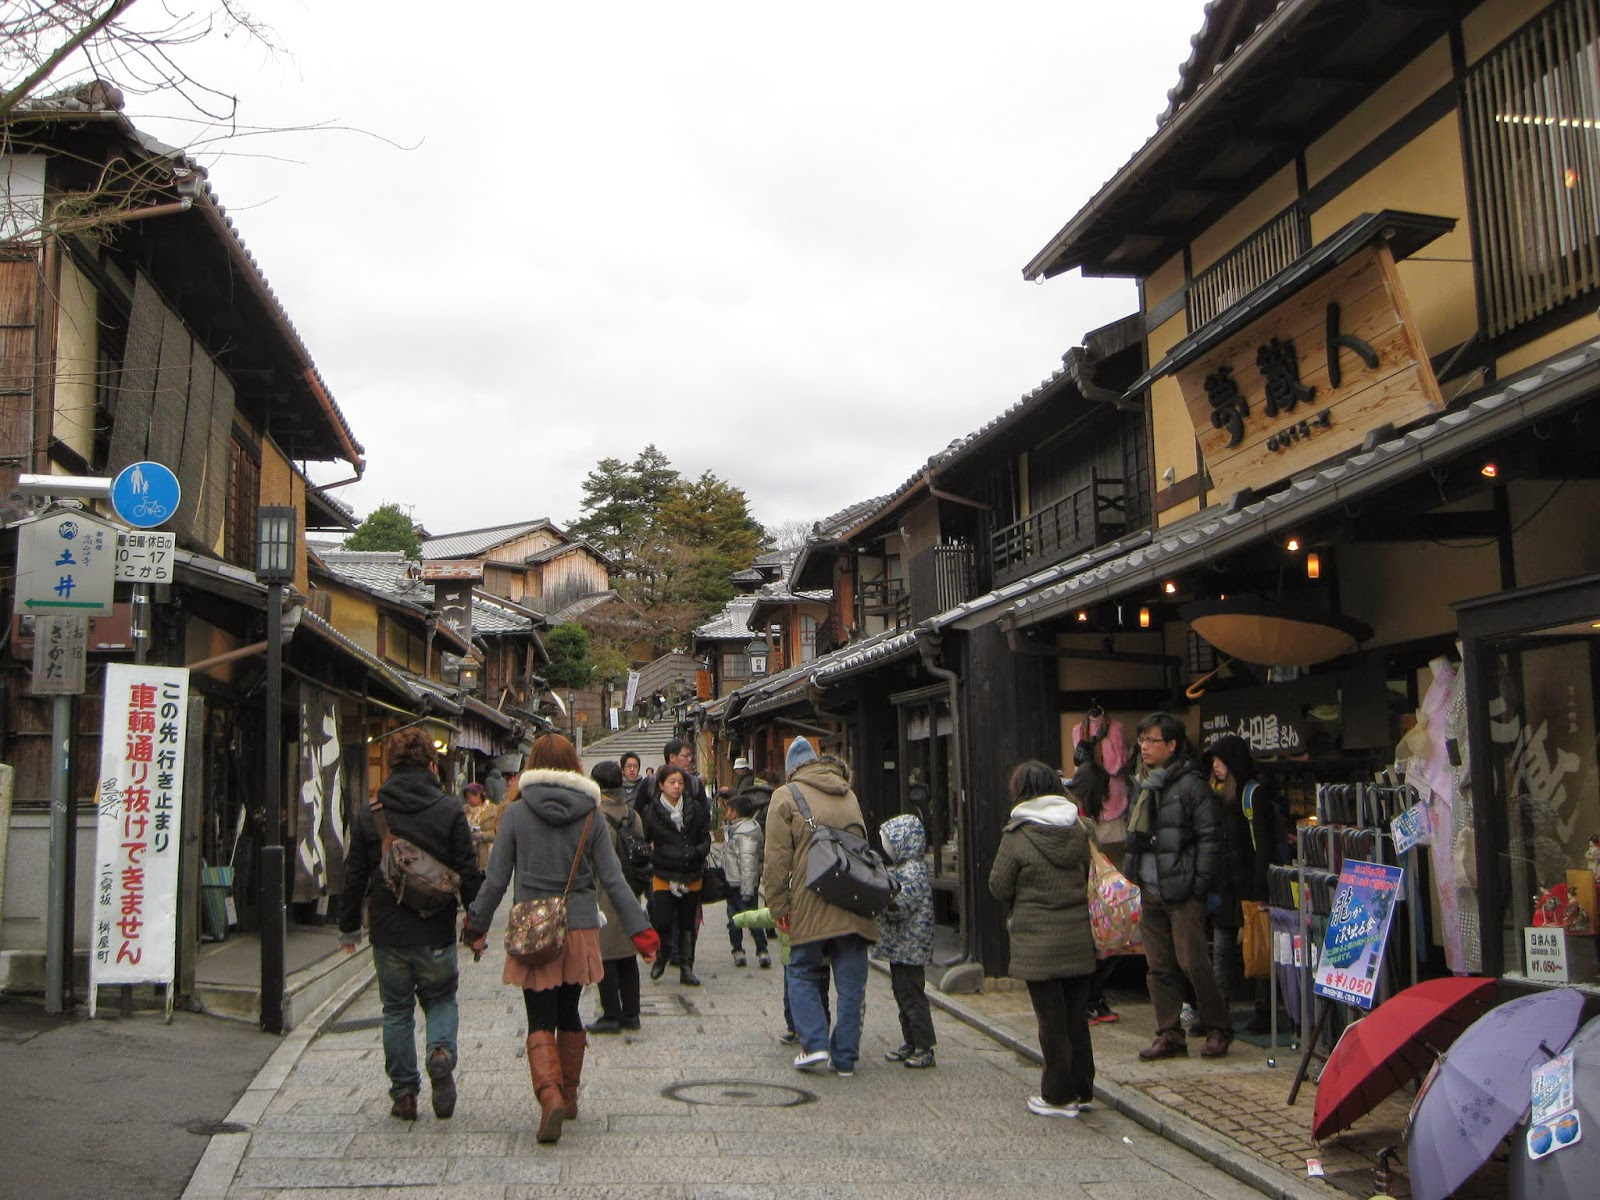 Kyoto - Shops line the streets of the Gion district